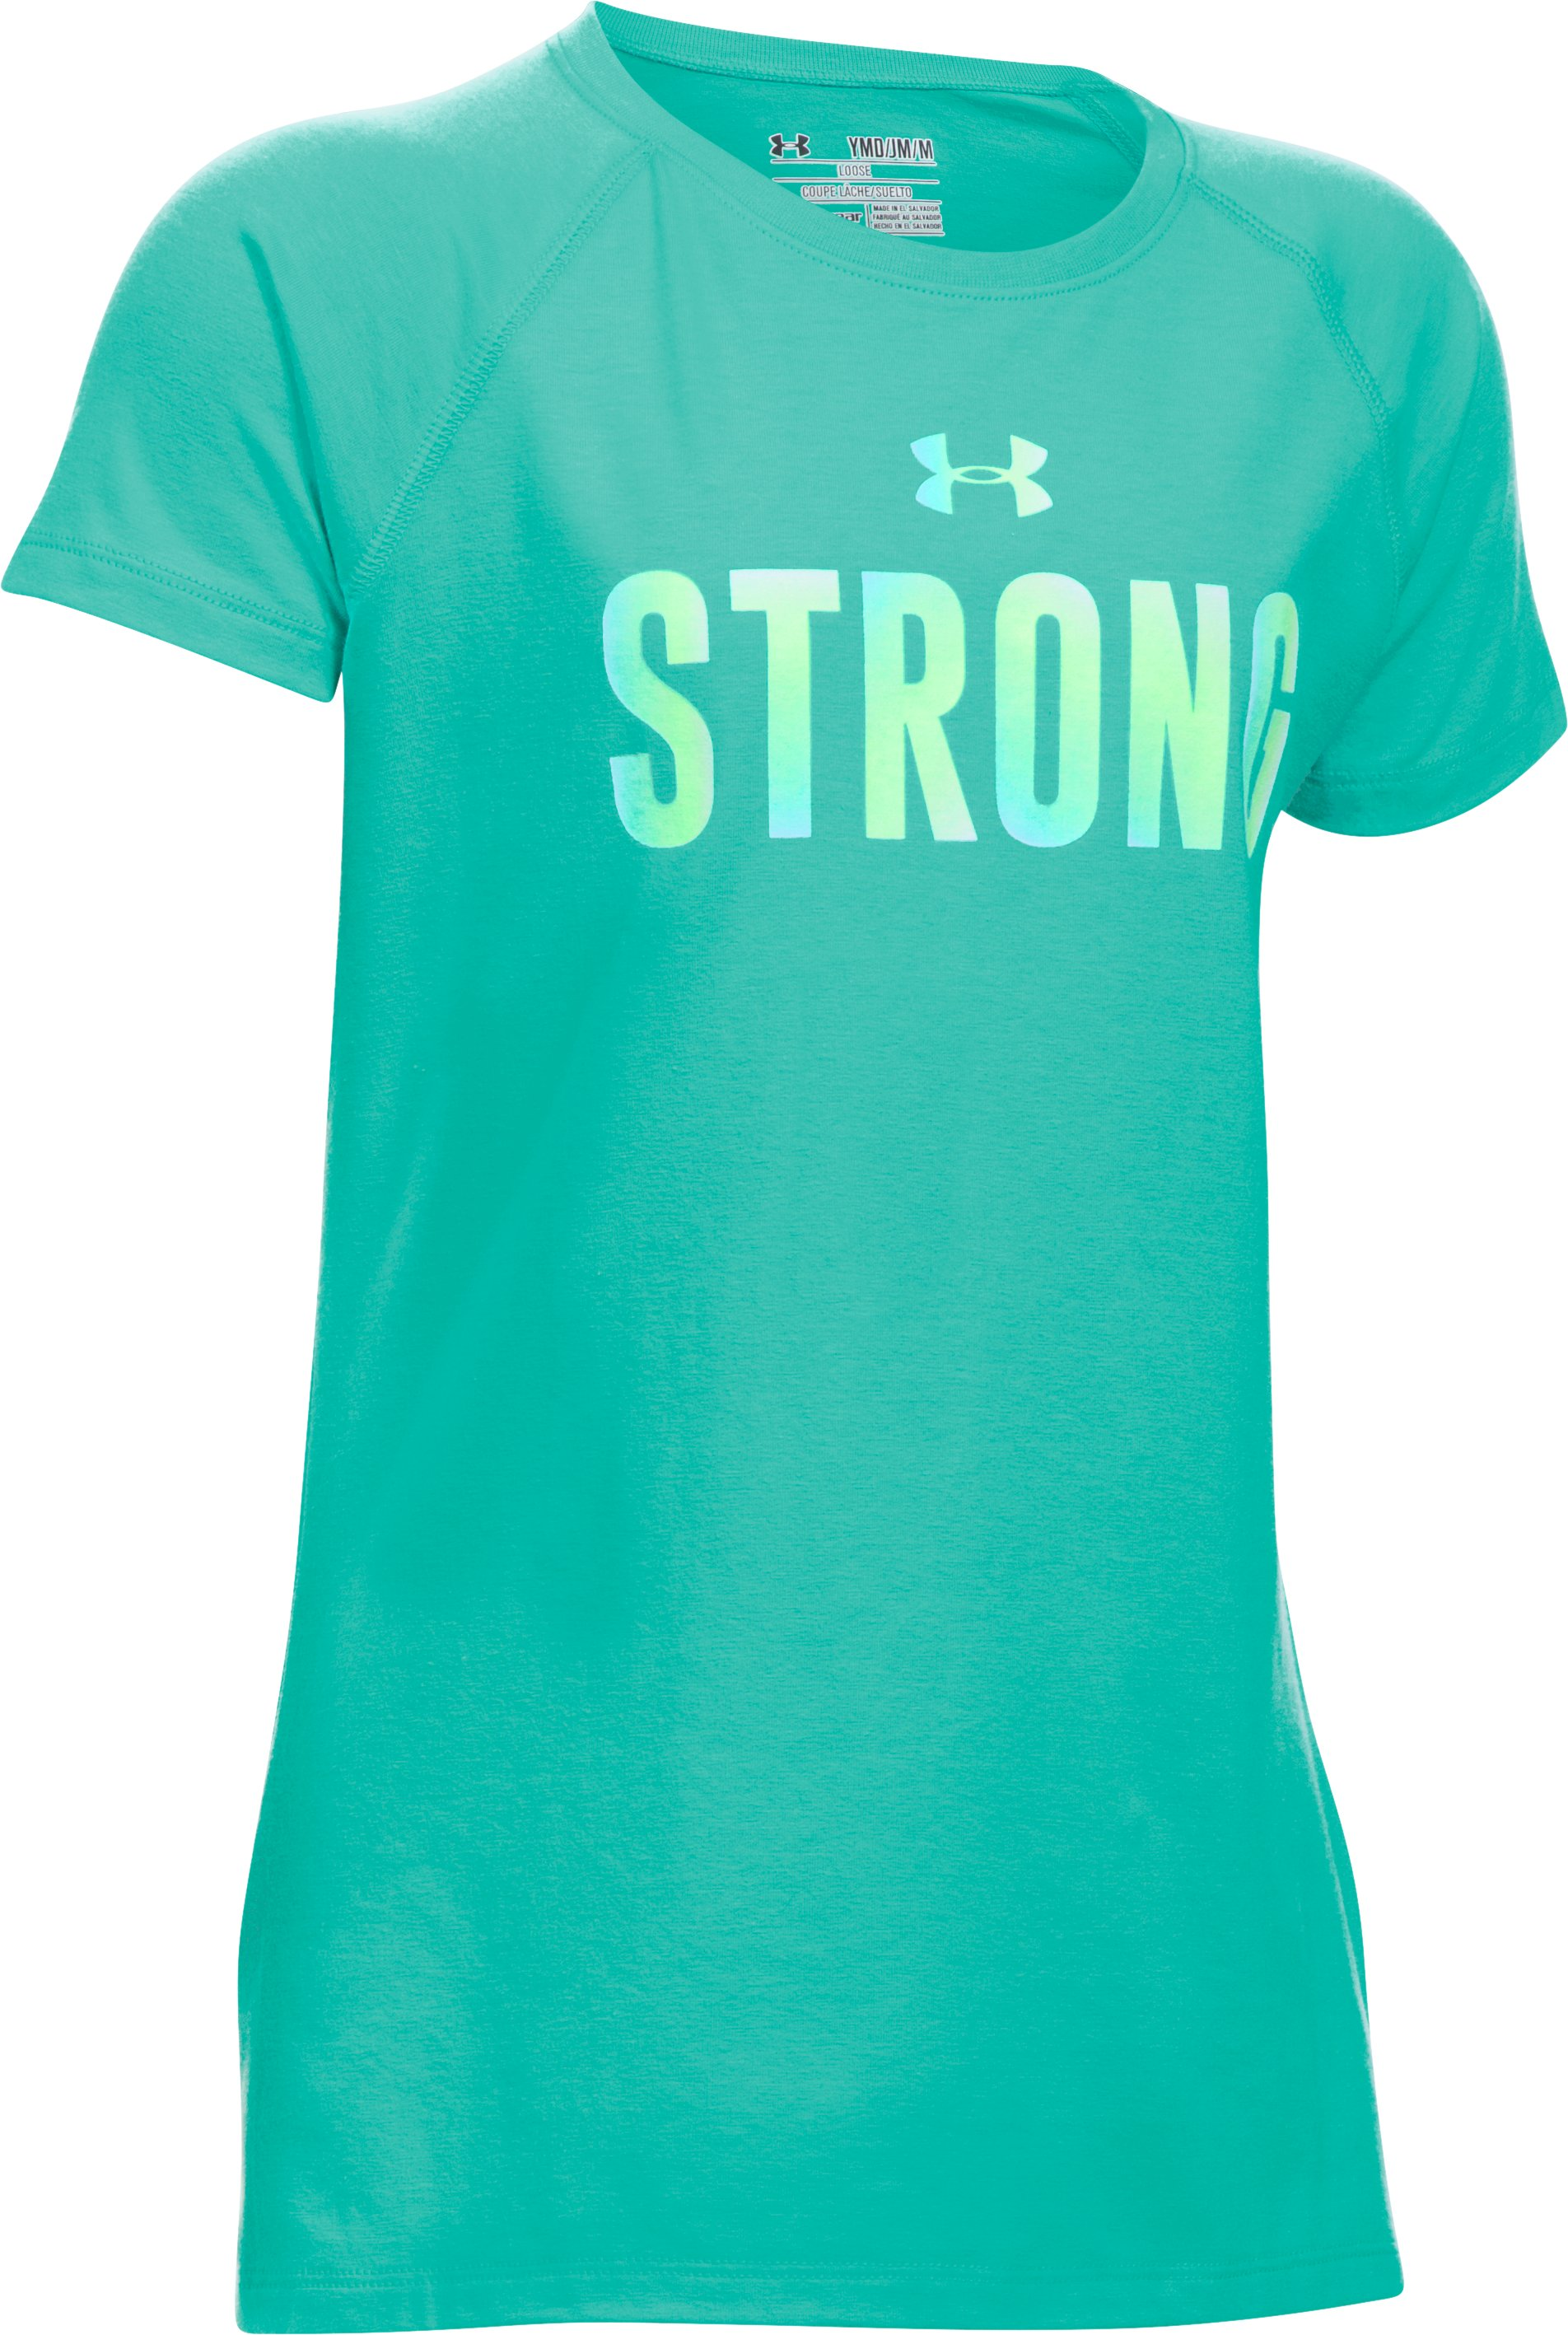 Girls' UA Strong Girl Short Sleeve T-Shirt, Mosaic